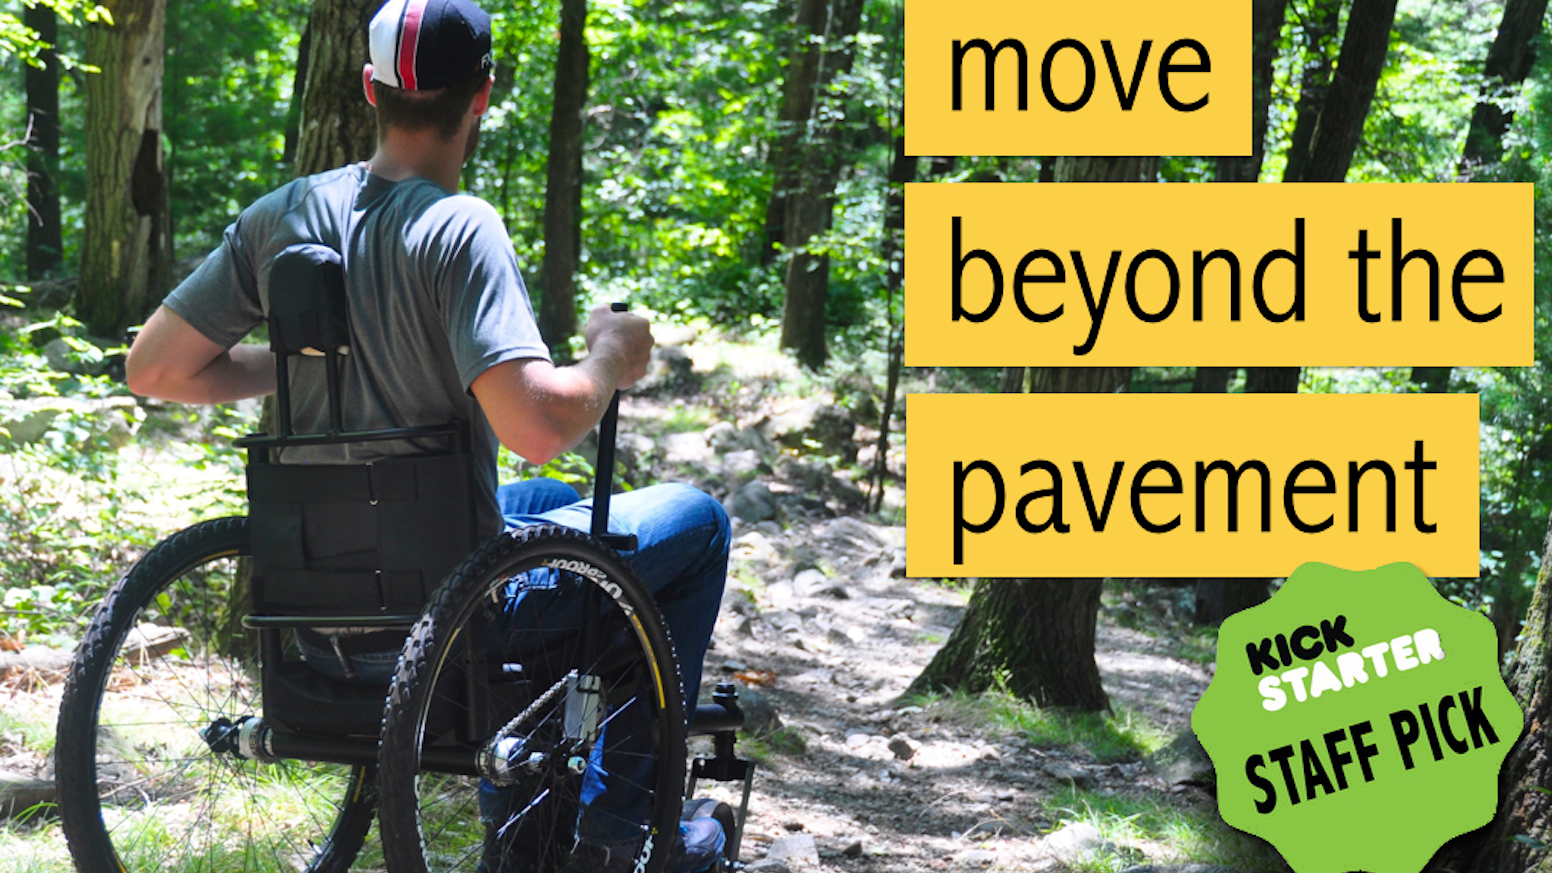 The Freedom Chair empowers people with disabilities to move beyond the pavement. Join us in redefining mobility around the world.